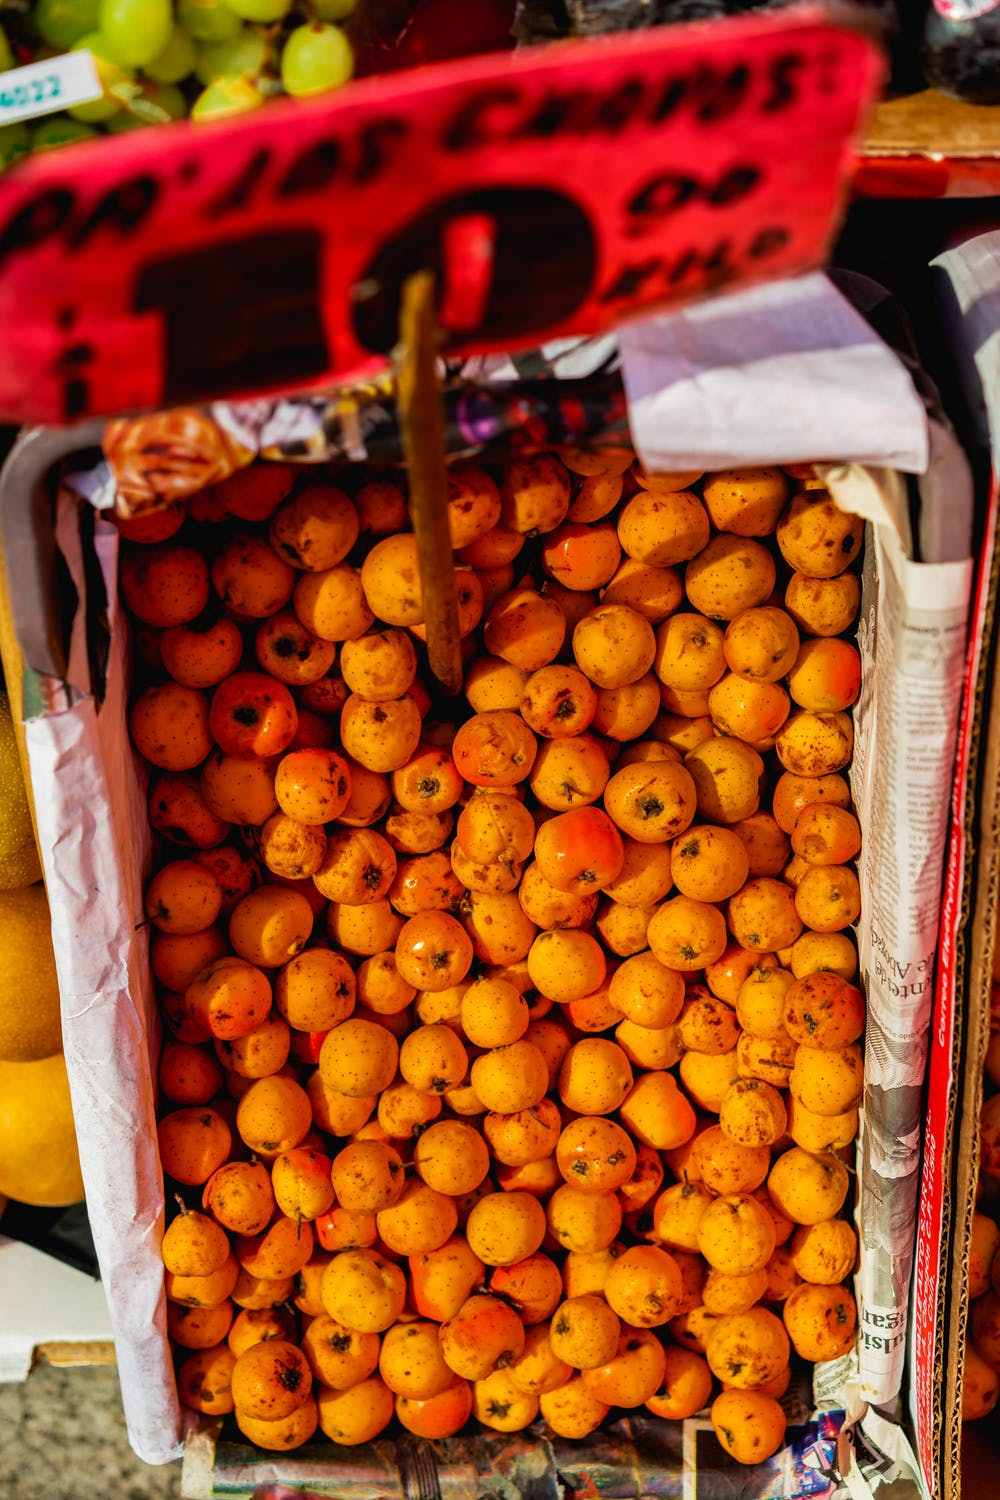 Basket of tiny mandarin citrus fruits for sale from a vendor at a Mexico City market